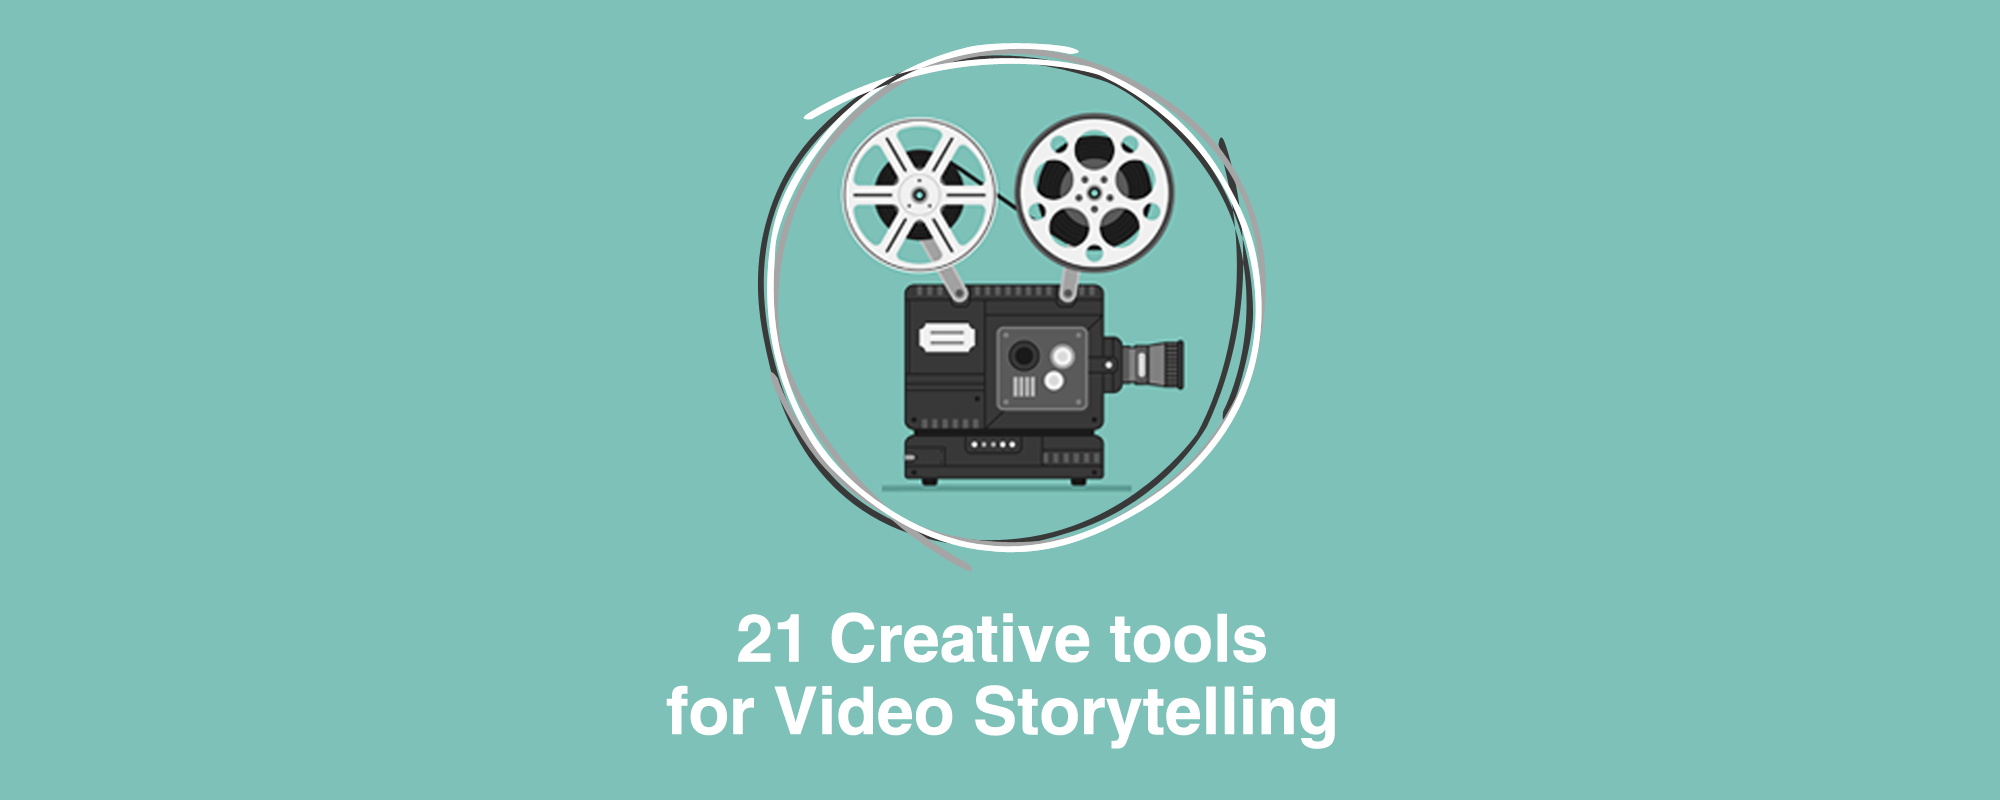 Creative Tools List for Video Storytelling & Brand Marketing